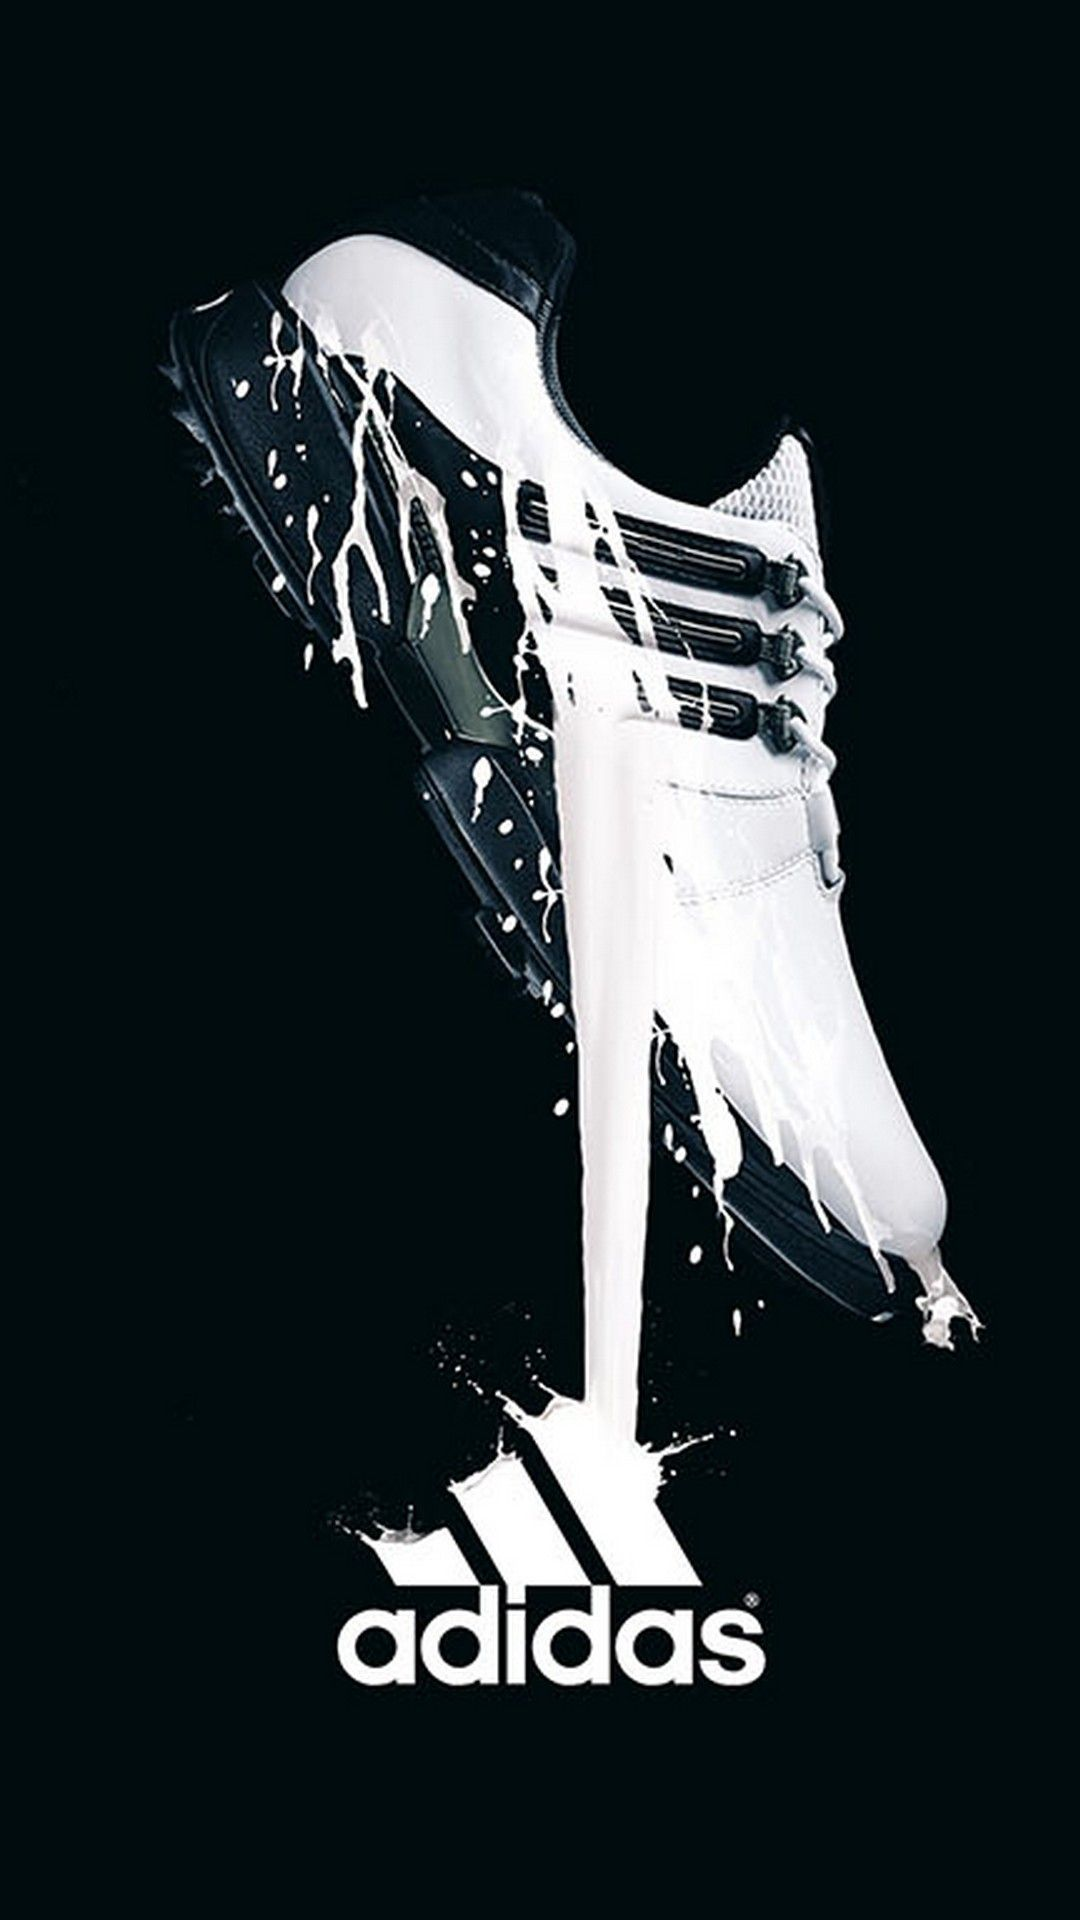 Adidas Logo Phone 8 Wallpaper Best Phone Wallpaper Hd In 2020 Adidas Advertising Adidas Logo Wallpapers Shoe Advertising